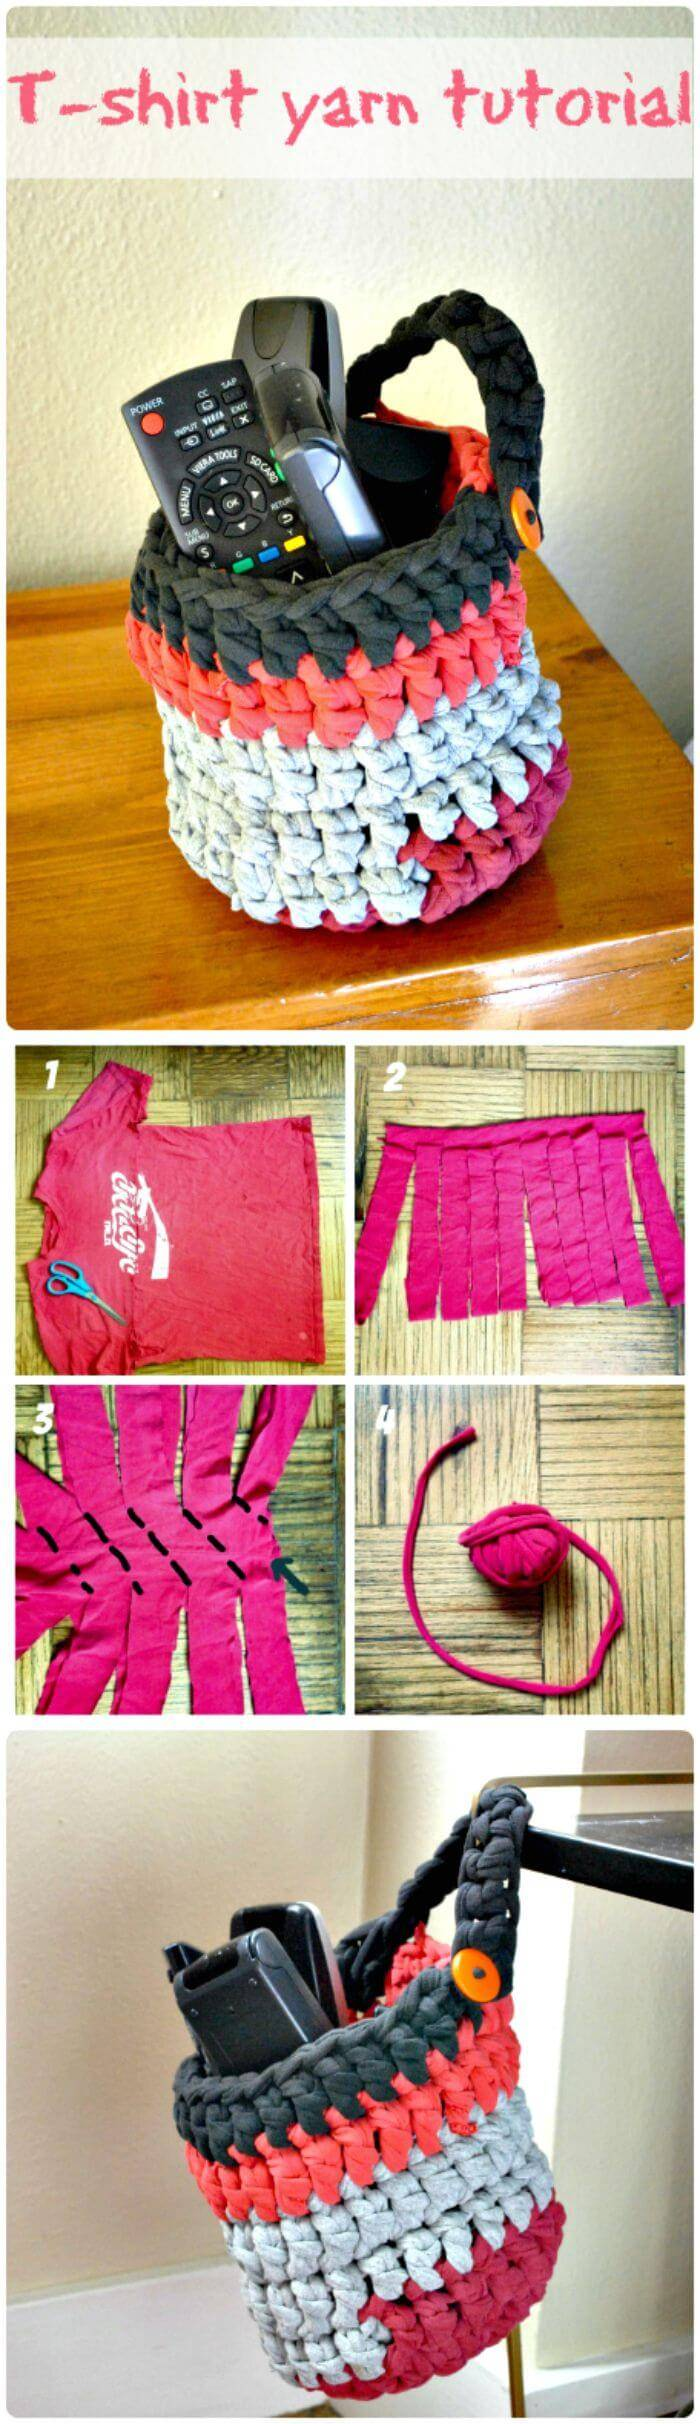 240 easy craft ideas to make and sell page 23 of 24 for Make and sell shirts